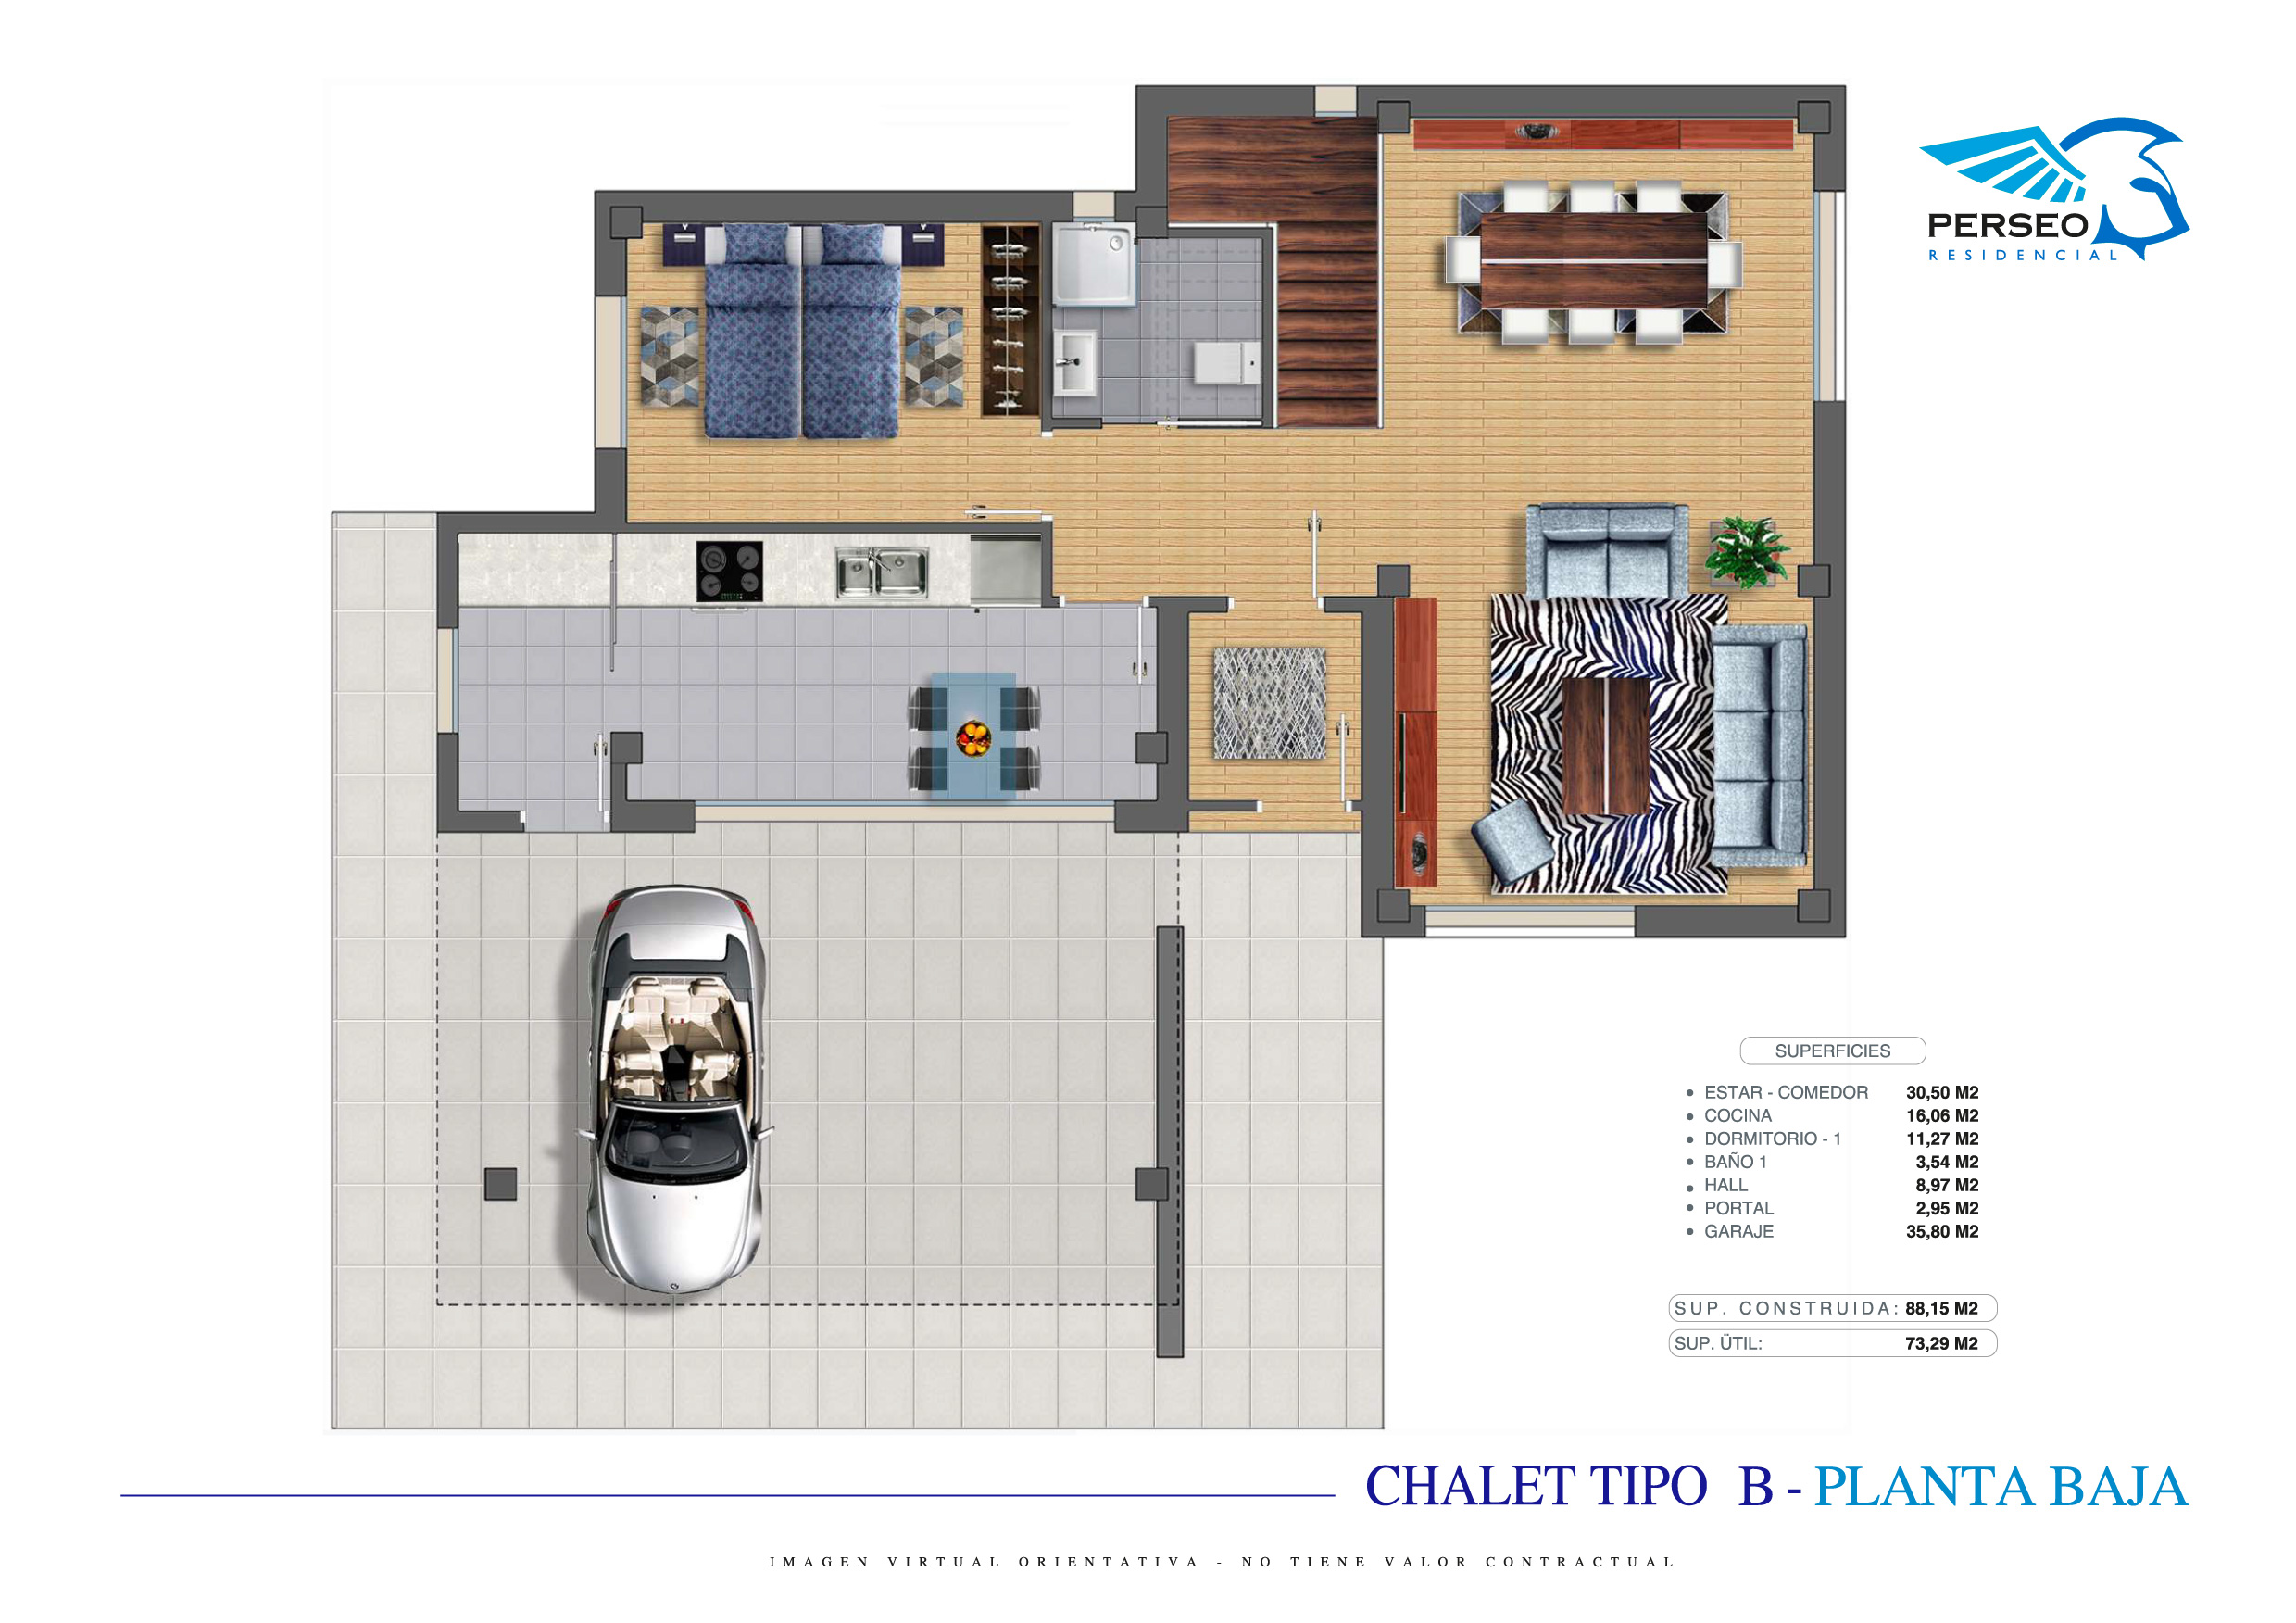 Residencial Perseo - Chalet B - P1-01